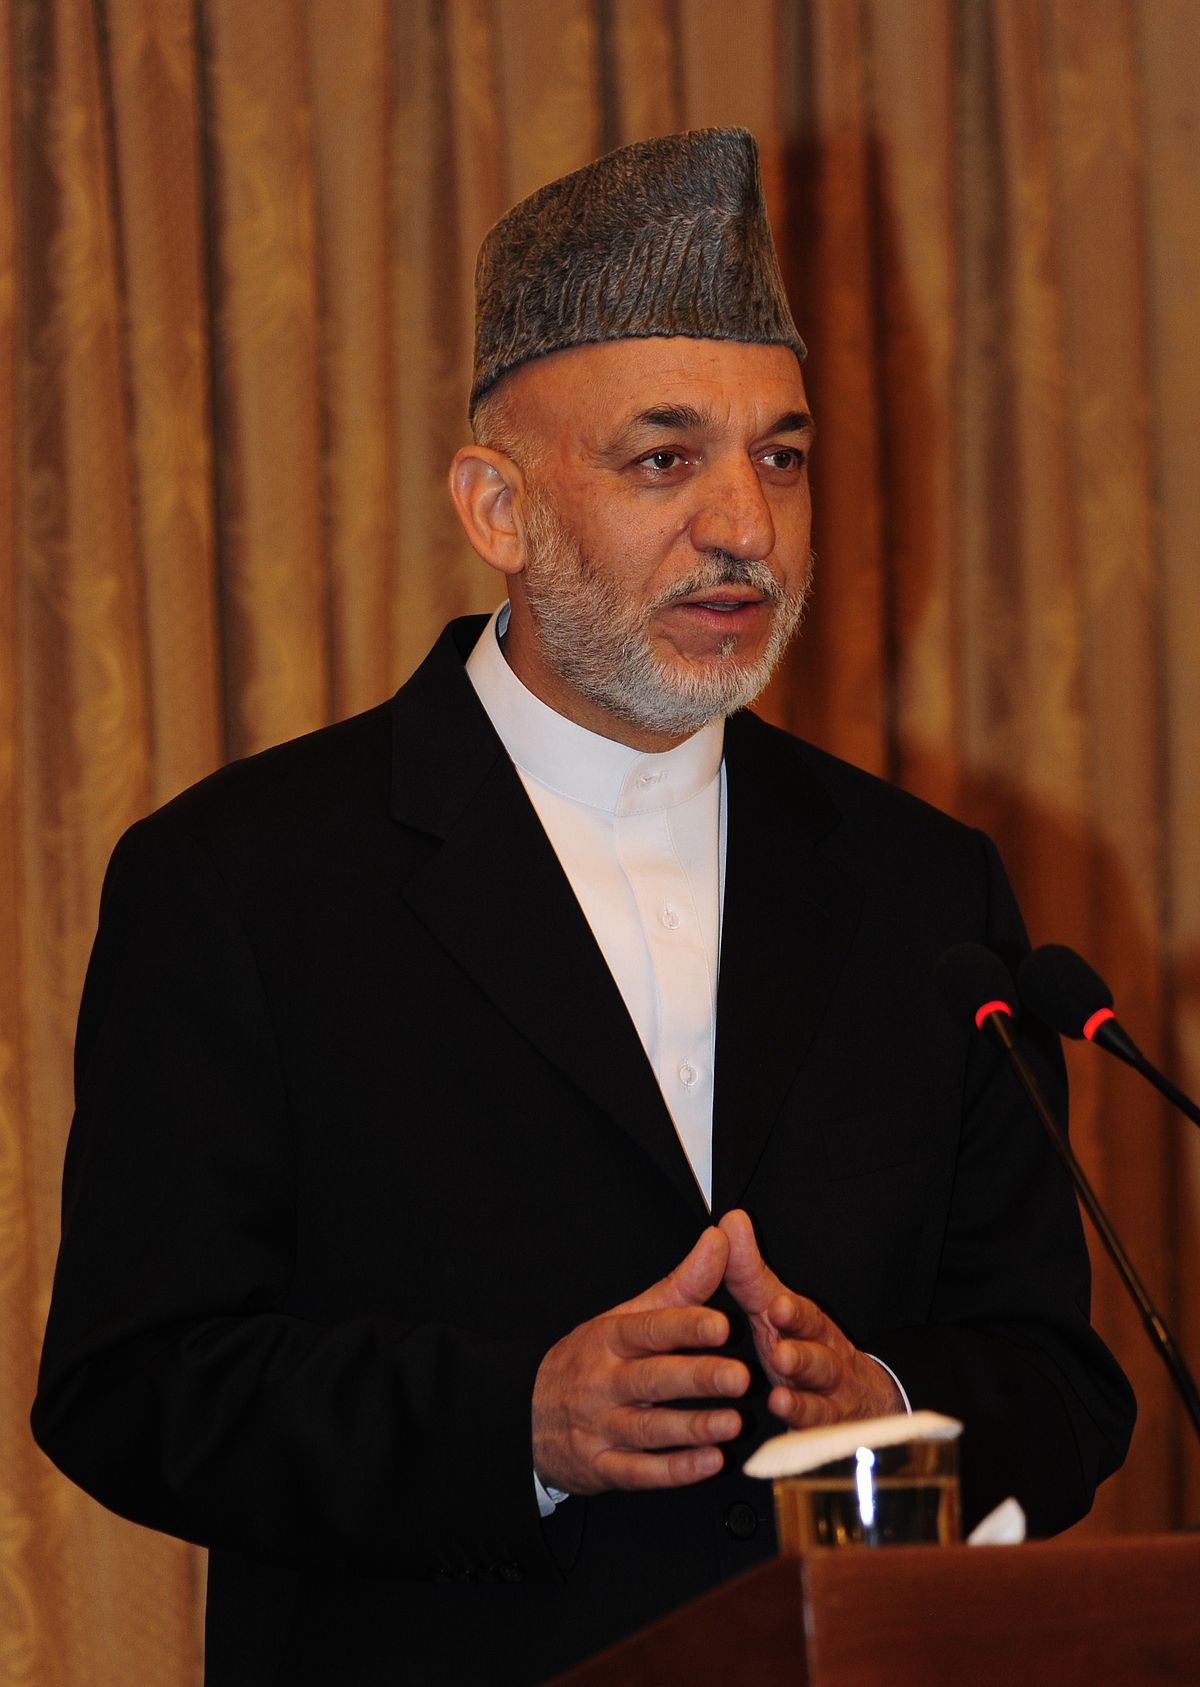 hamid karzai On the eve of the anniversary of the 2001 attacks, the former president of afghanistan expressed doubt that the terrorist group was responsible.